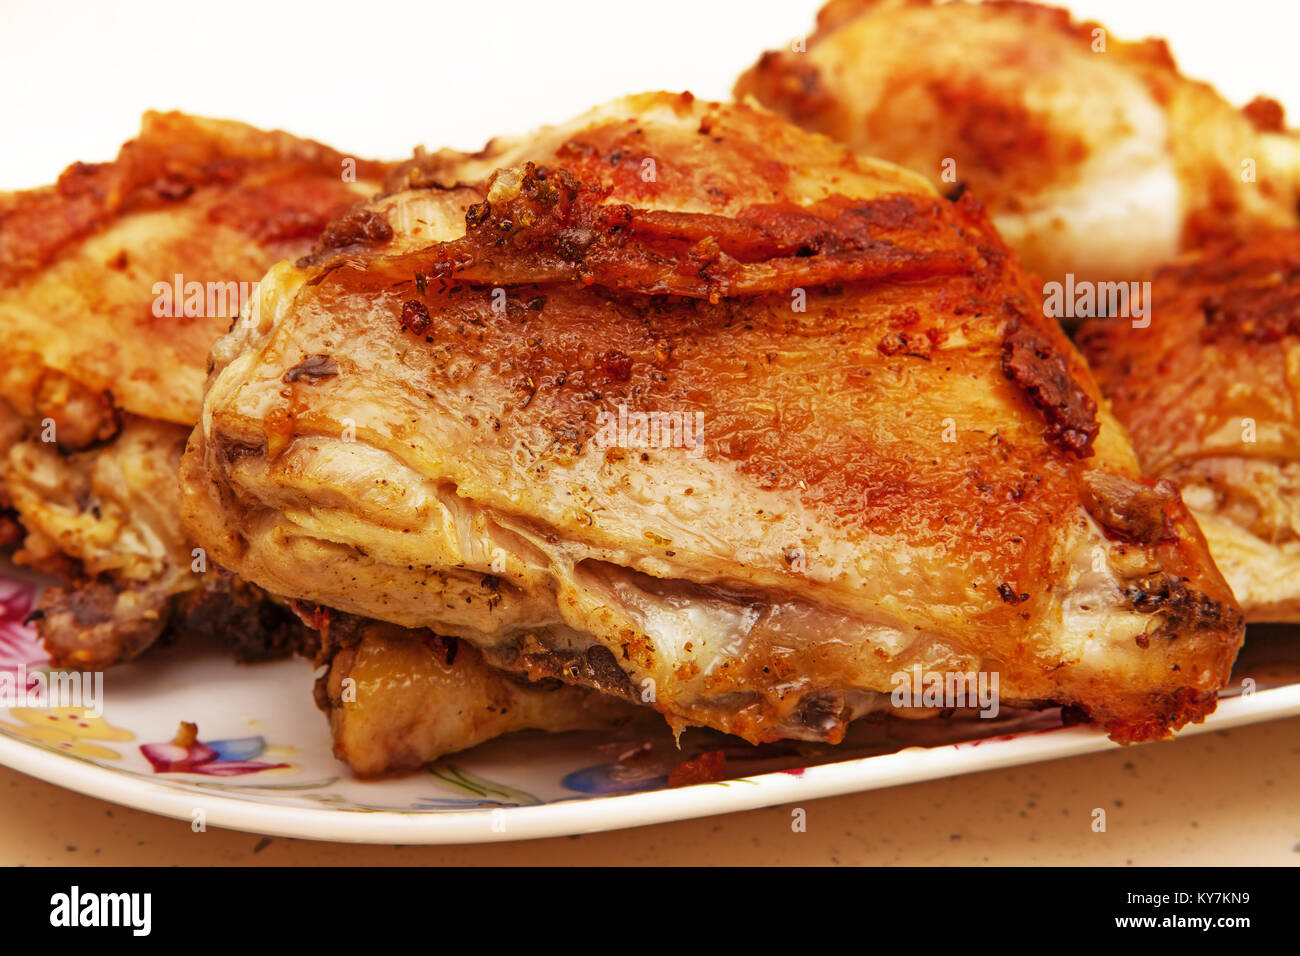 close-up of fatty fried chicken piece on plate - Stock Image